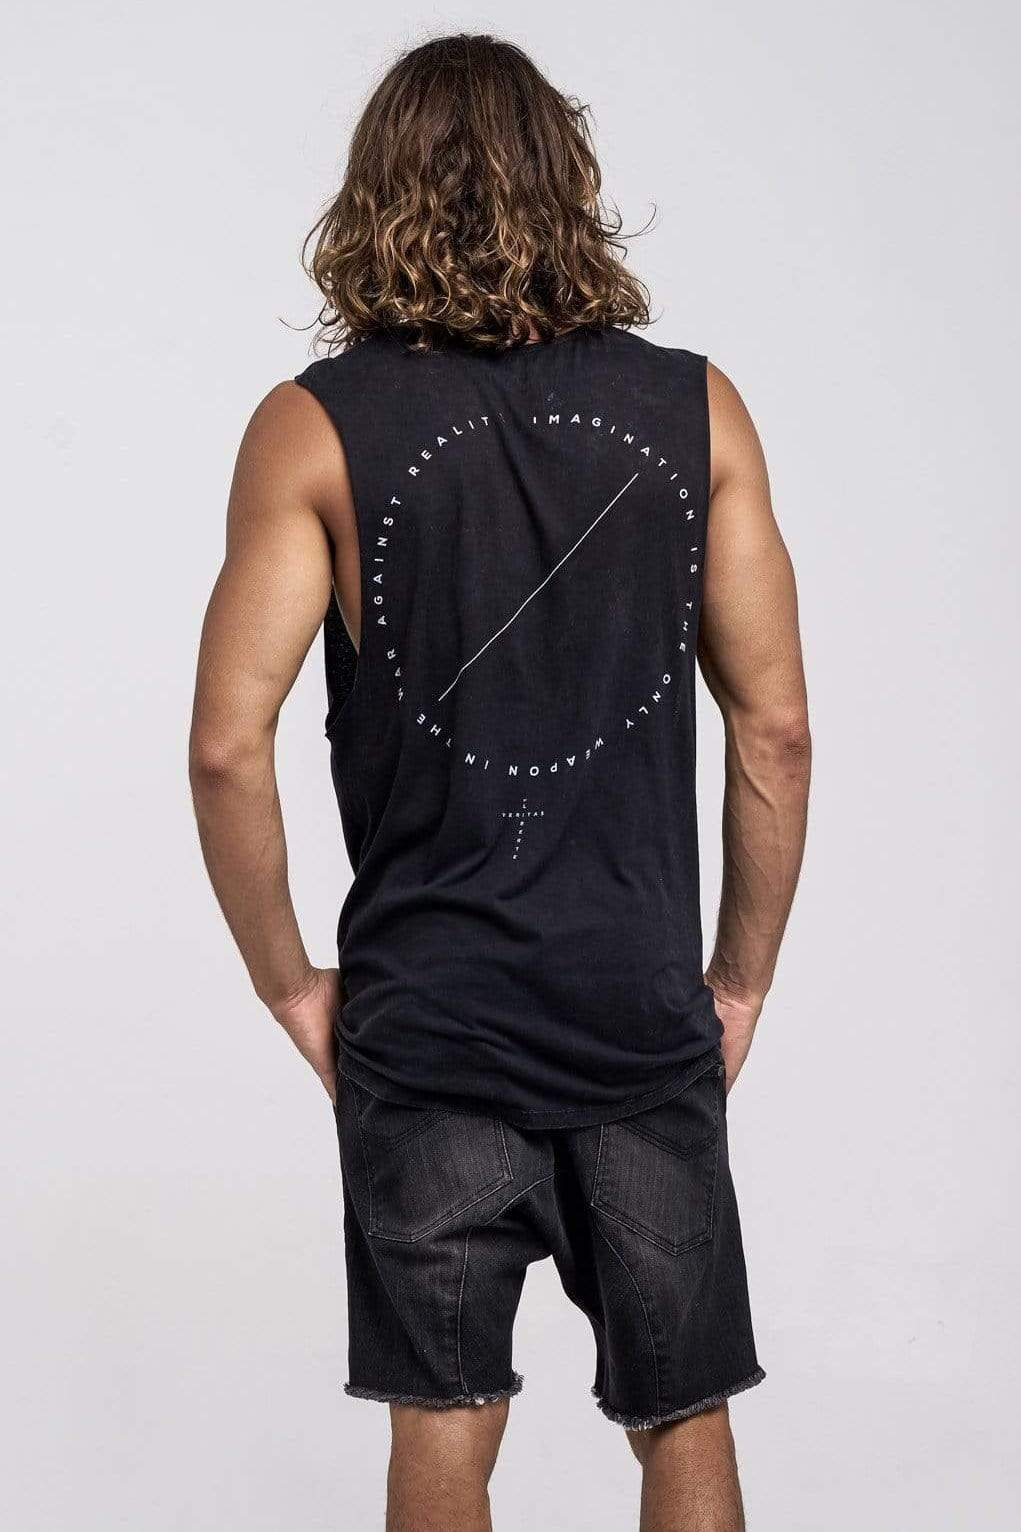 Lvm Truth Square - Mens Muscle Tank - VERITAS & LIBERTE